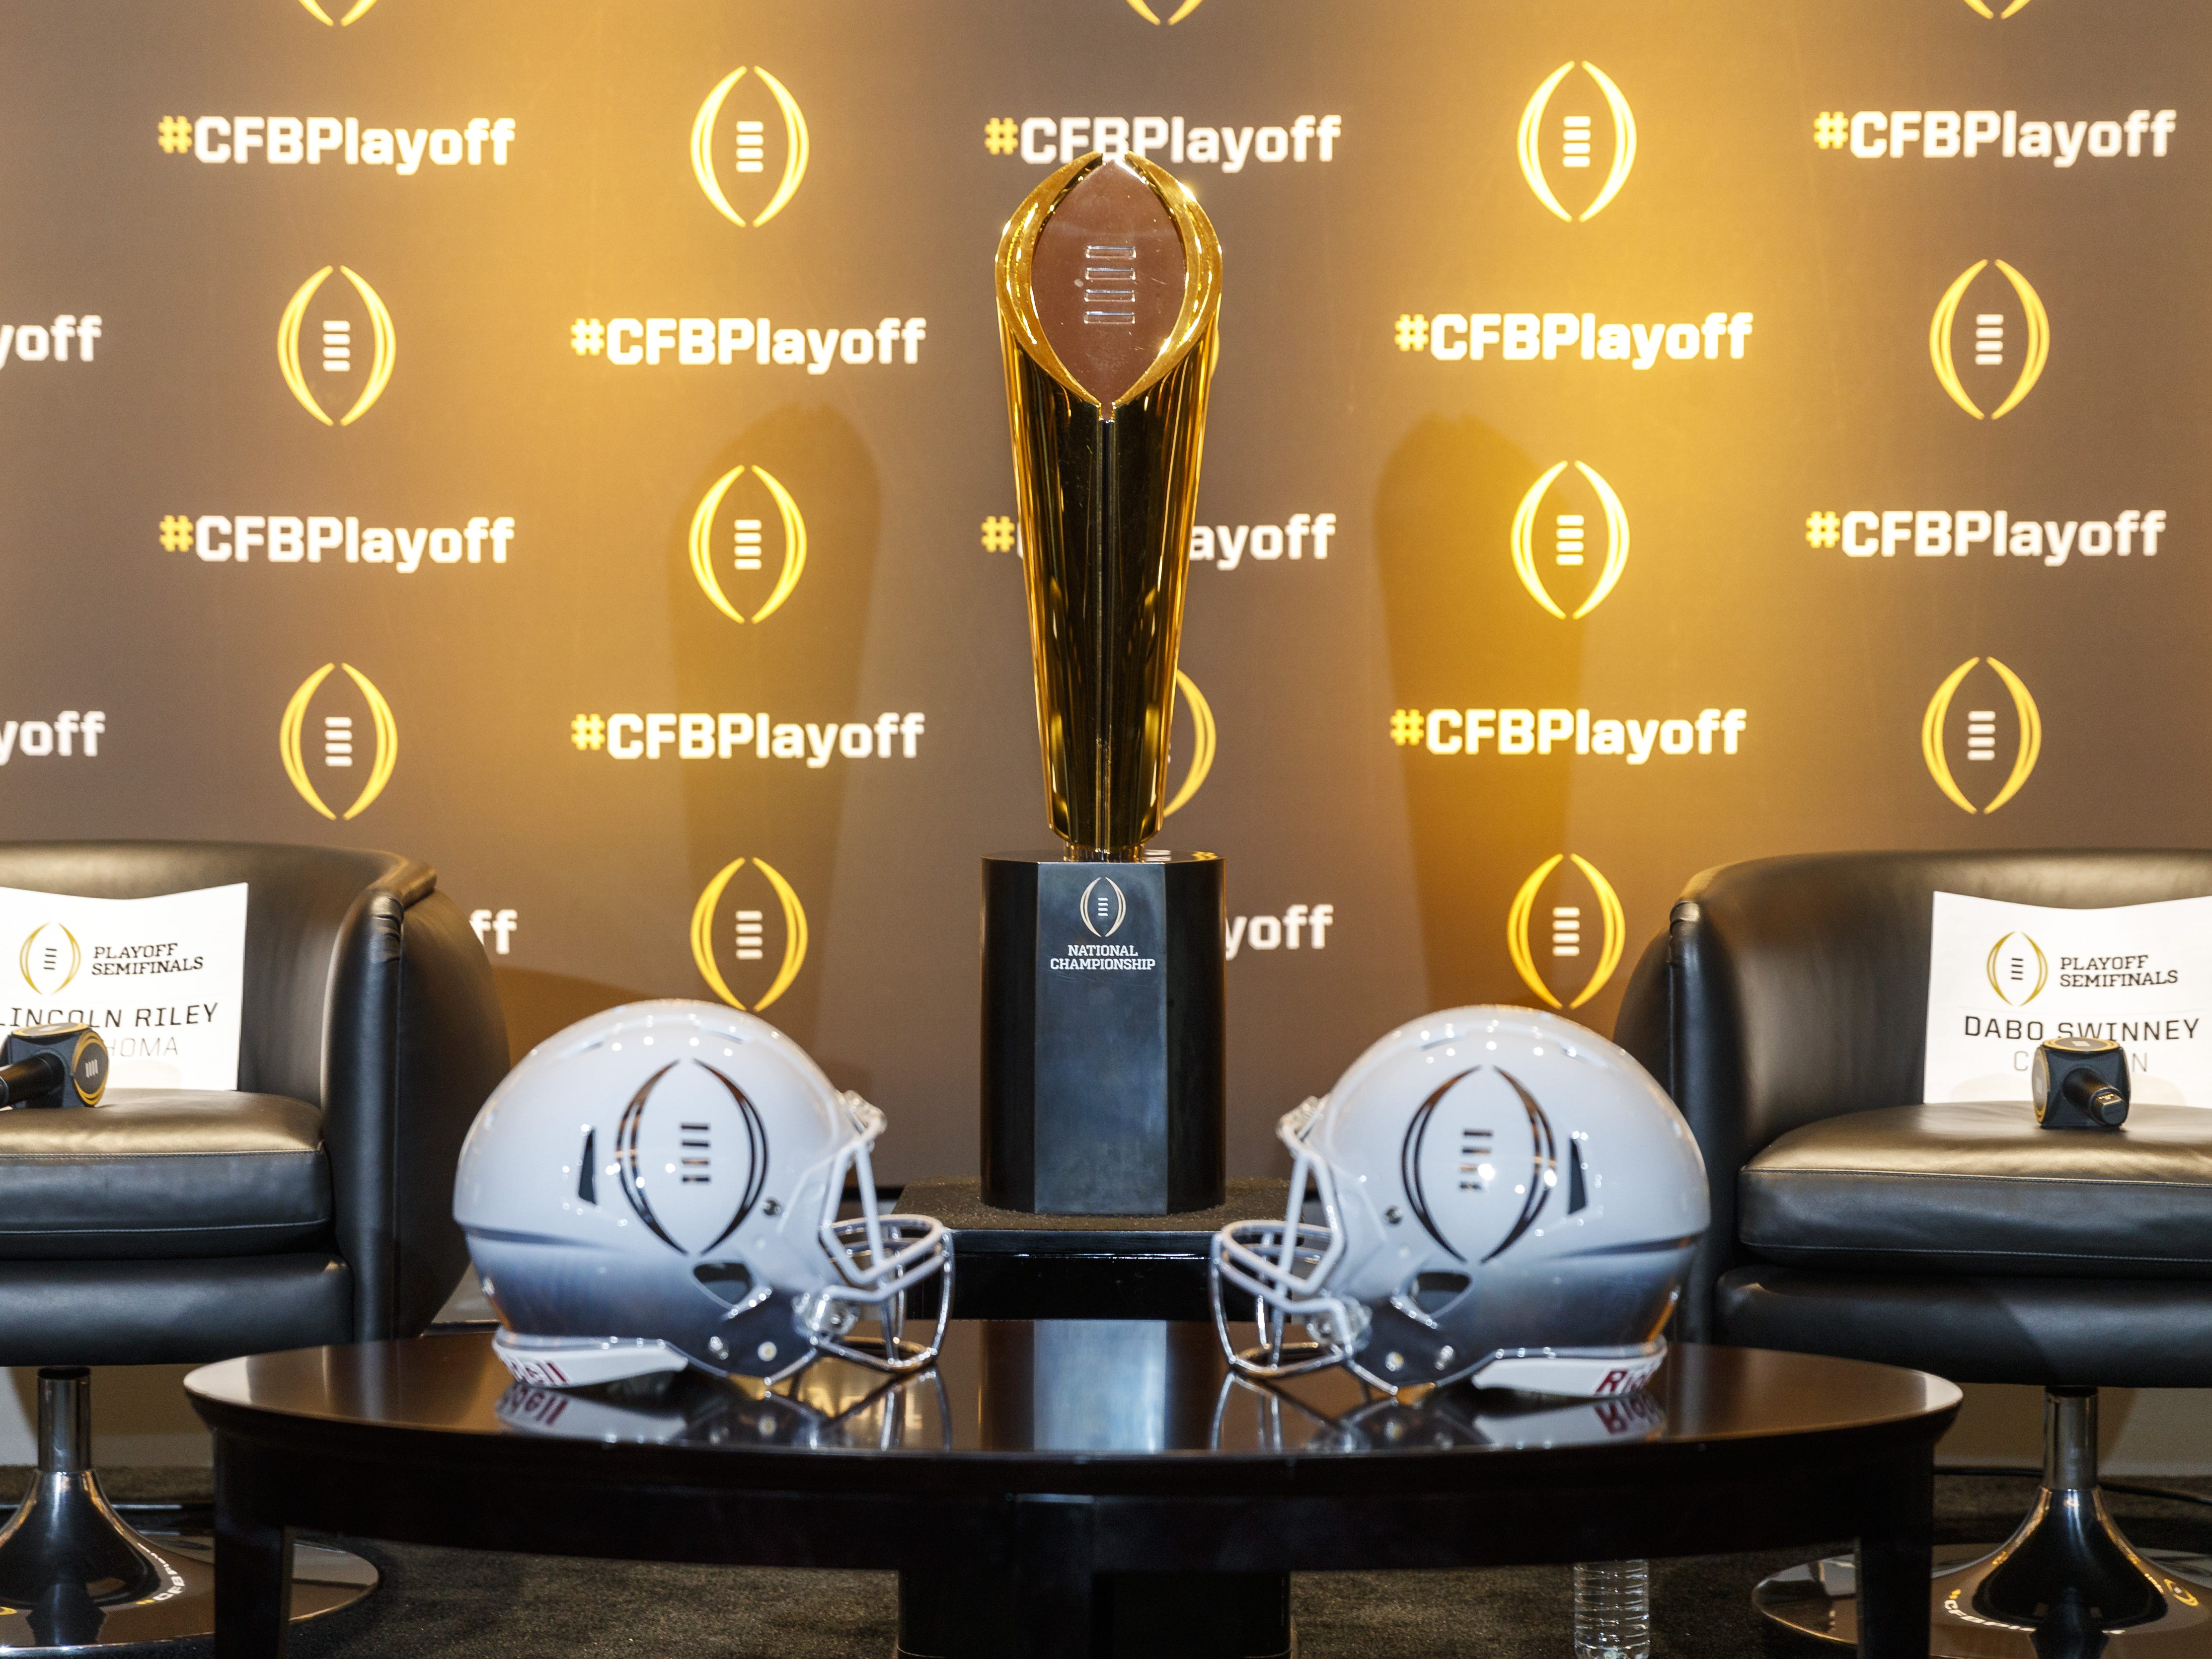 The National Championship trophy is displayed prior to the College Football Playoff Semifinal Head Coaches News Conference on December 6, 2018 in Atlanta.